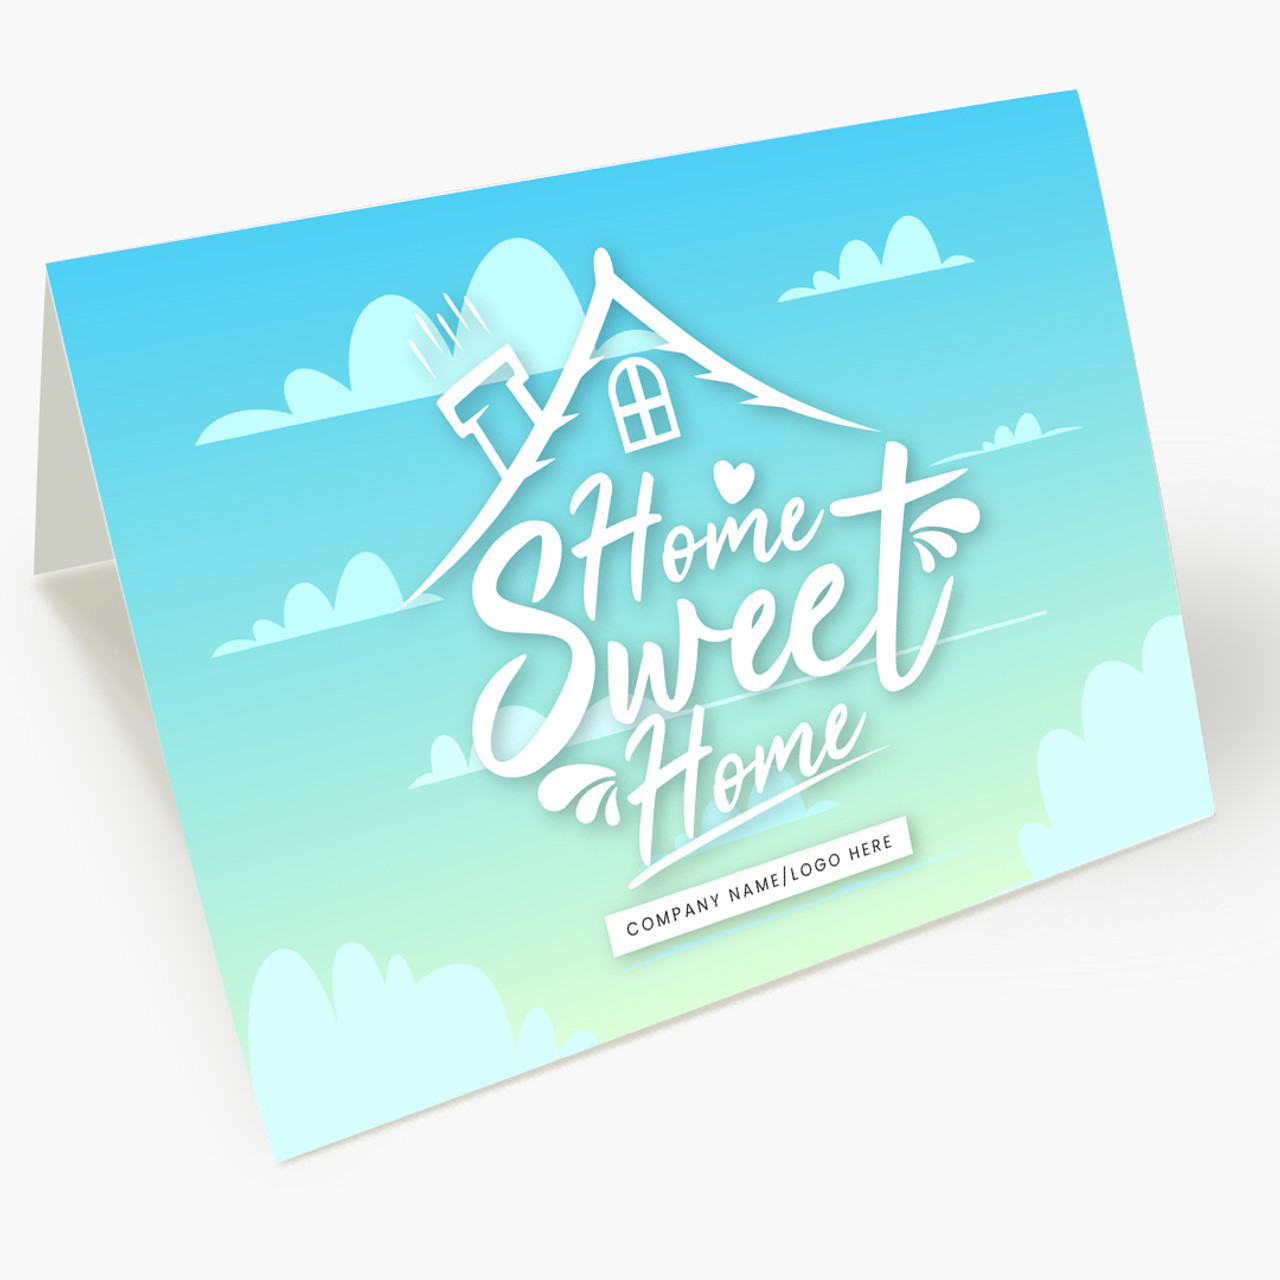 Home Sweet Home Real Estate Card